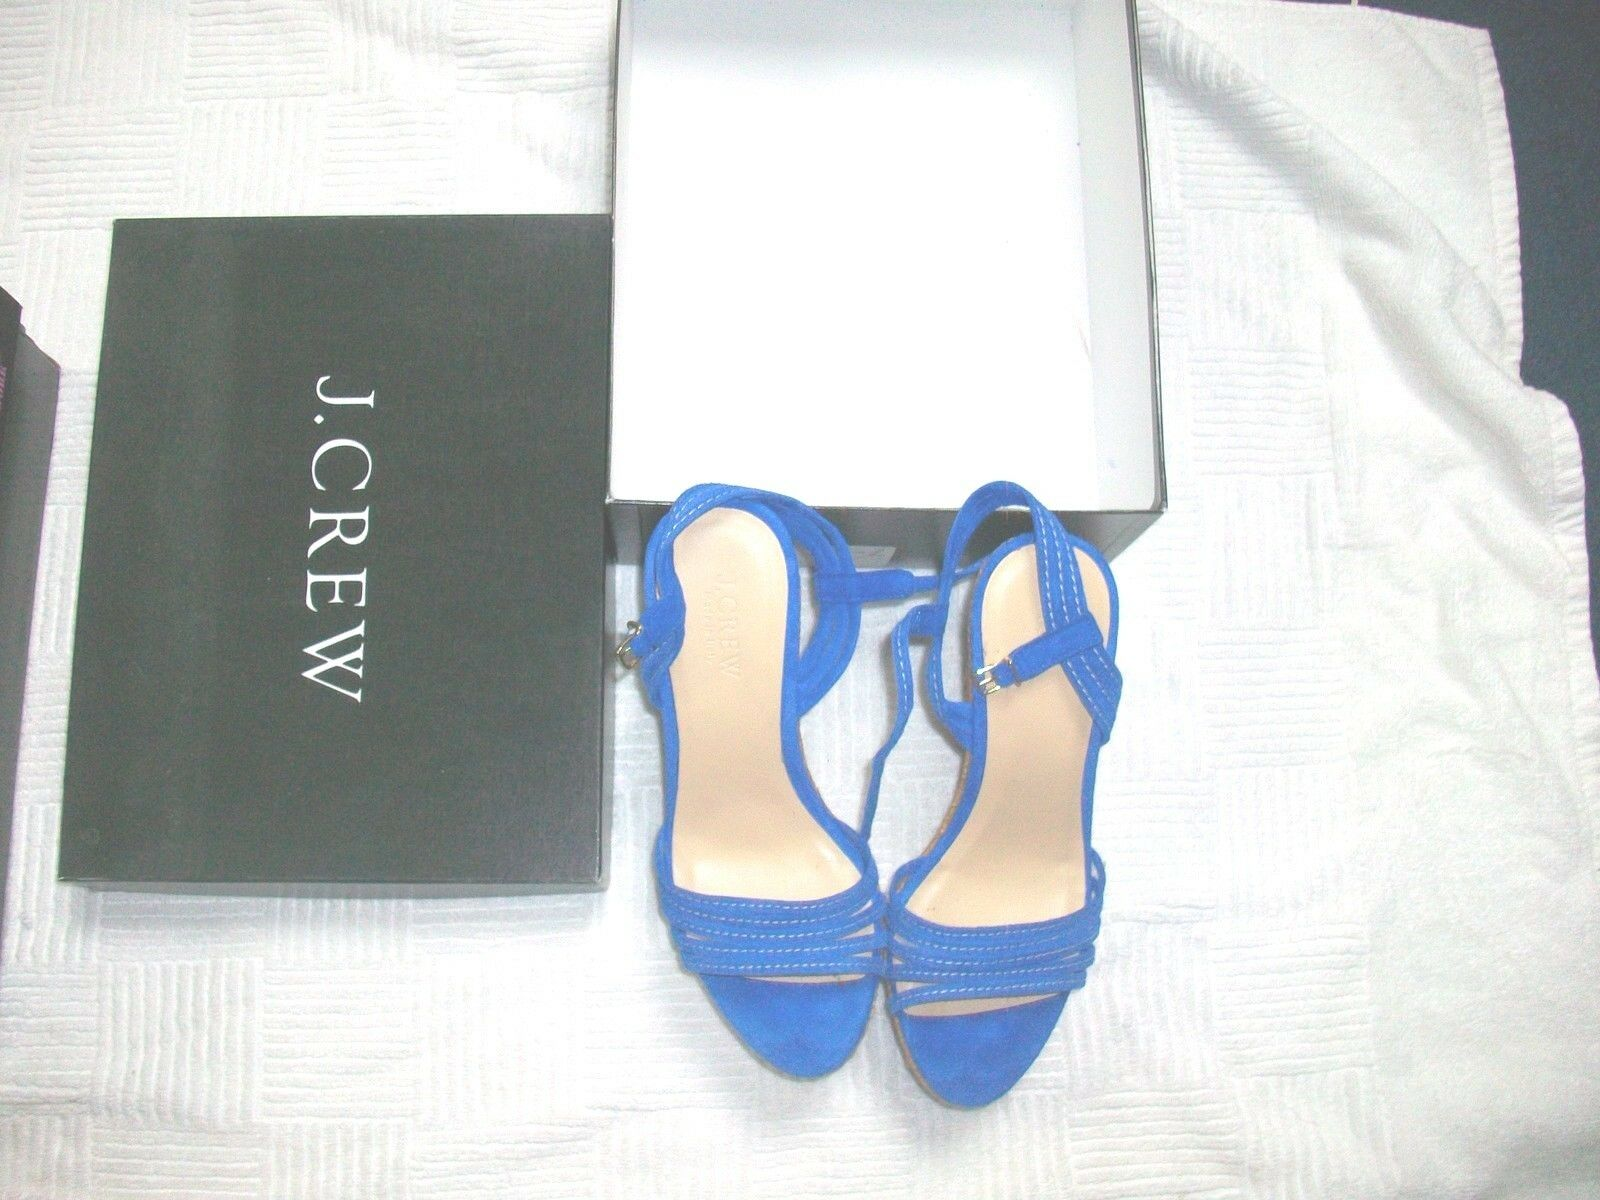 J 7 Crew Royal Blau Dress Platform Heel Schuhes Größe 7 J M 43c4d6